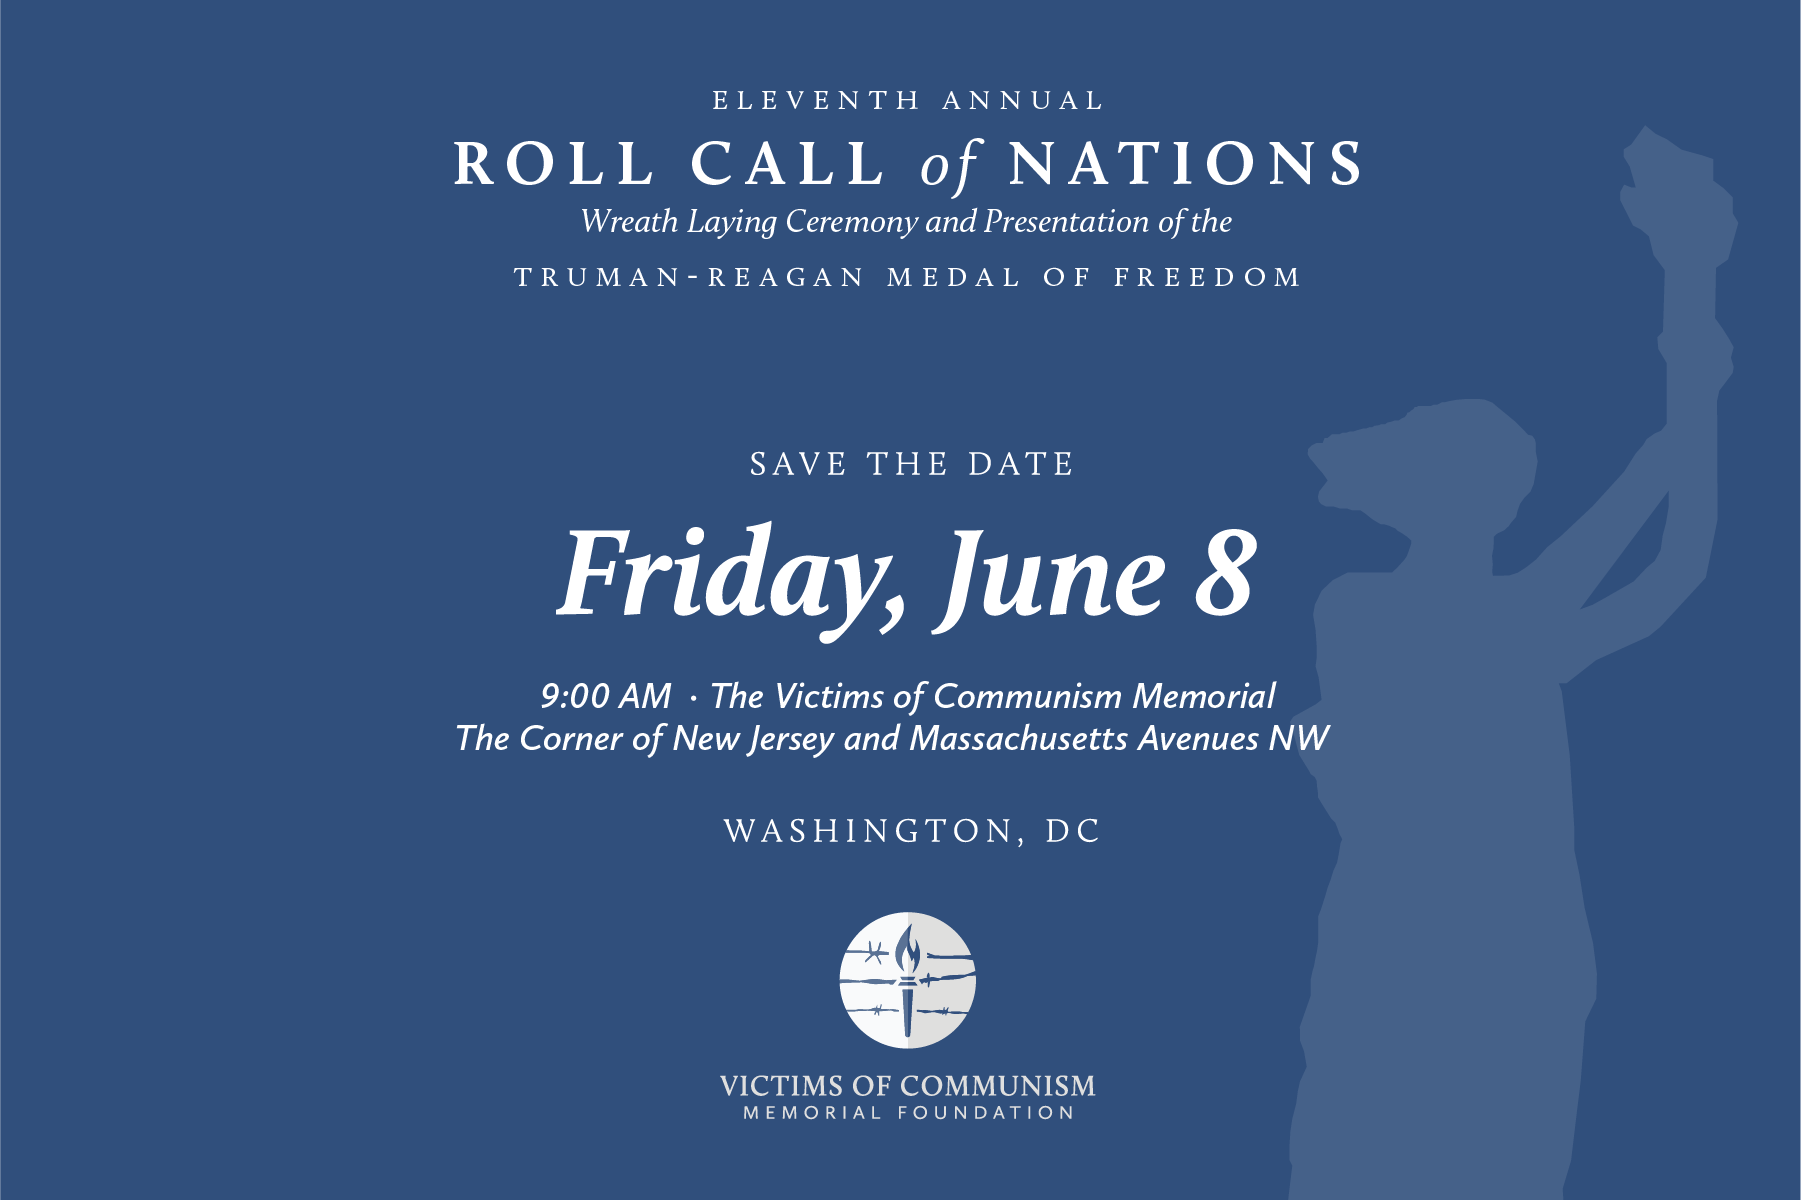 Roll Call of Nations Save the Date.png